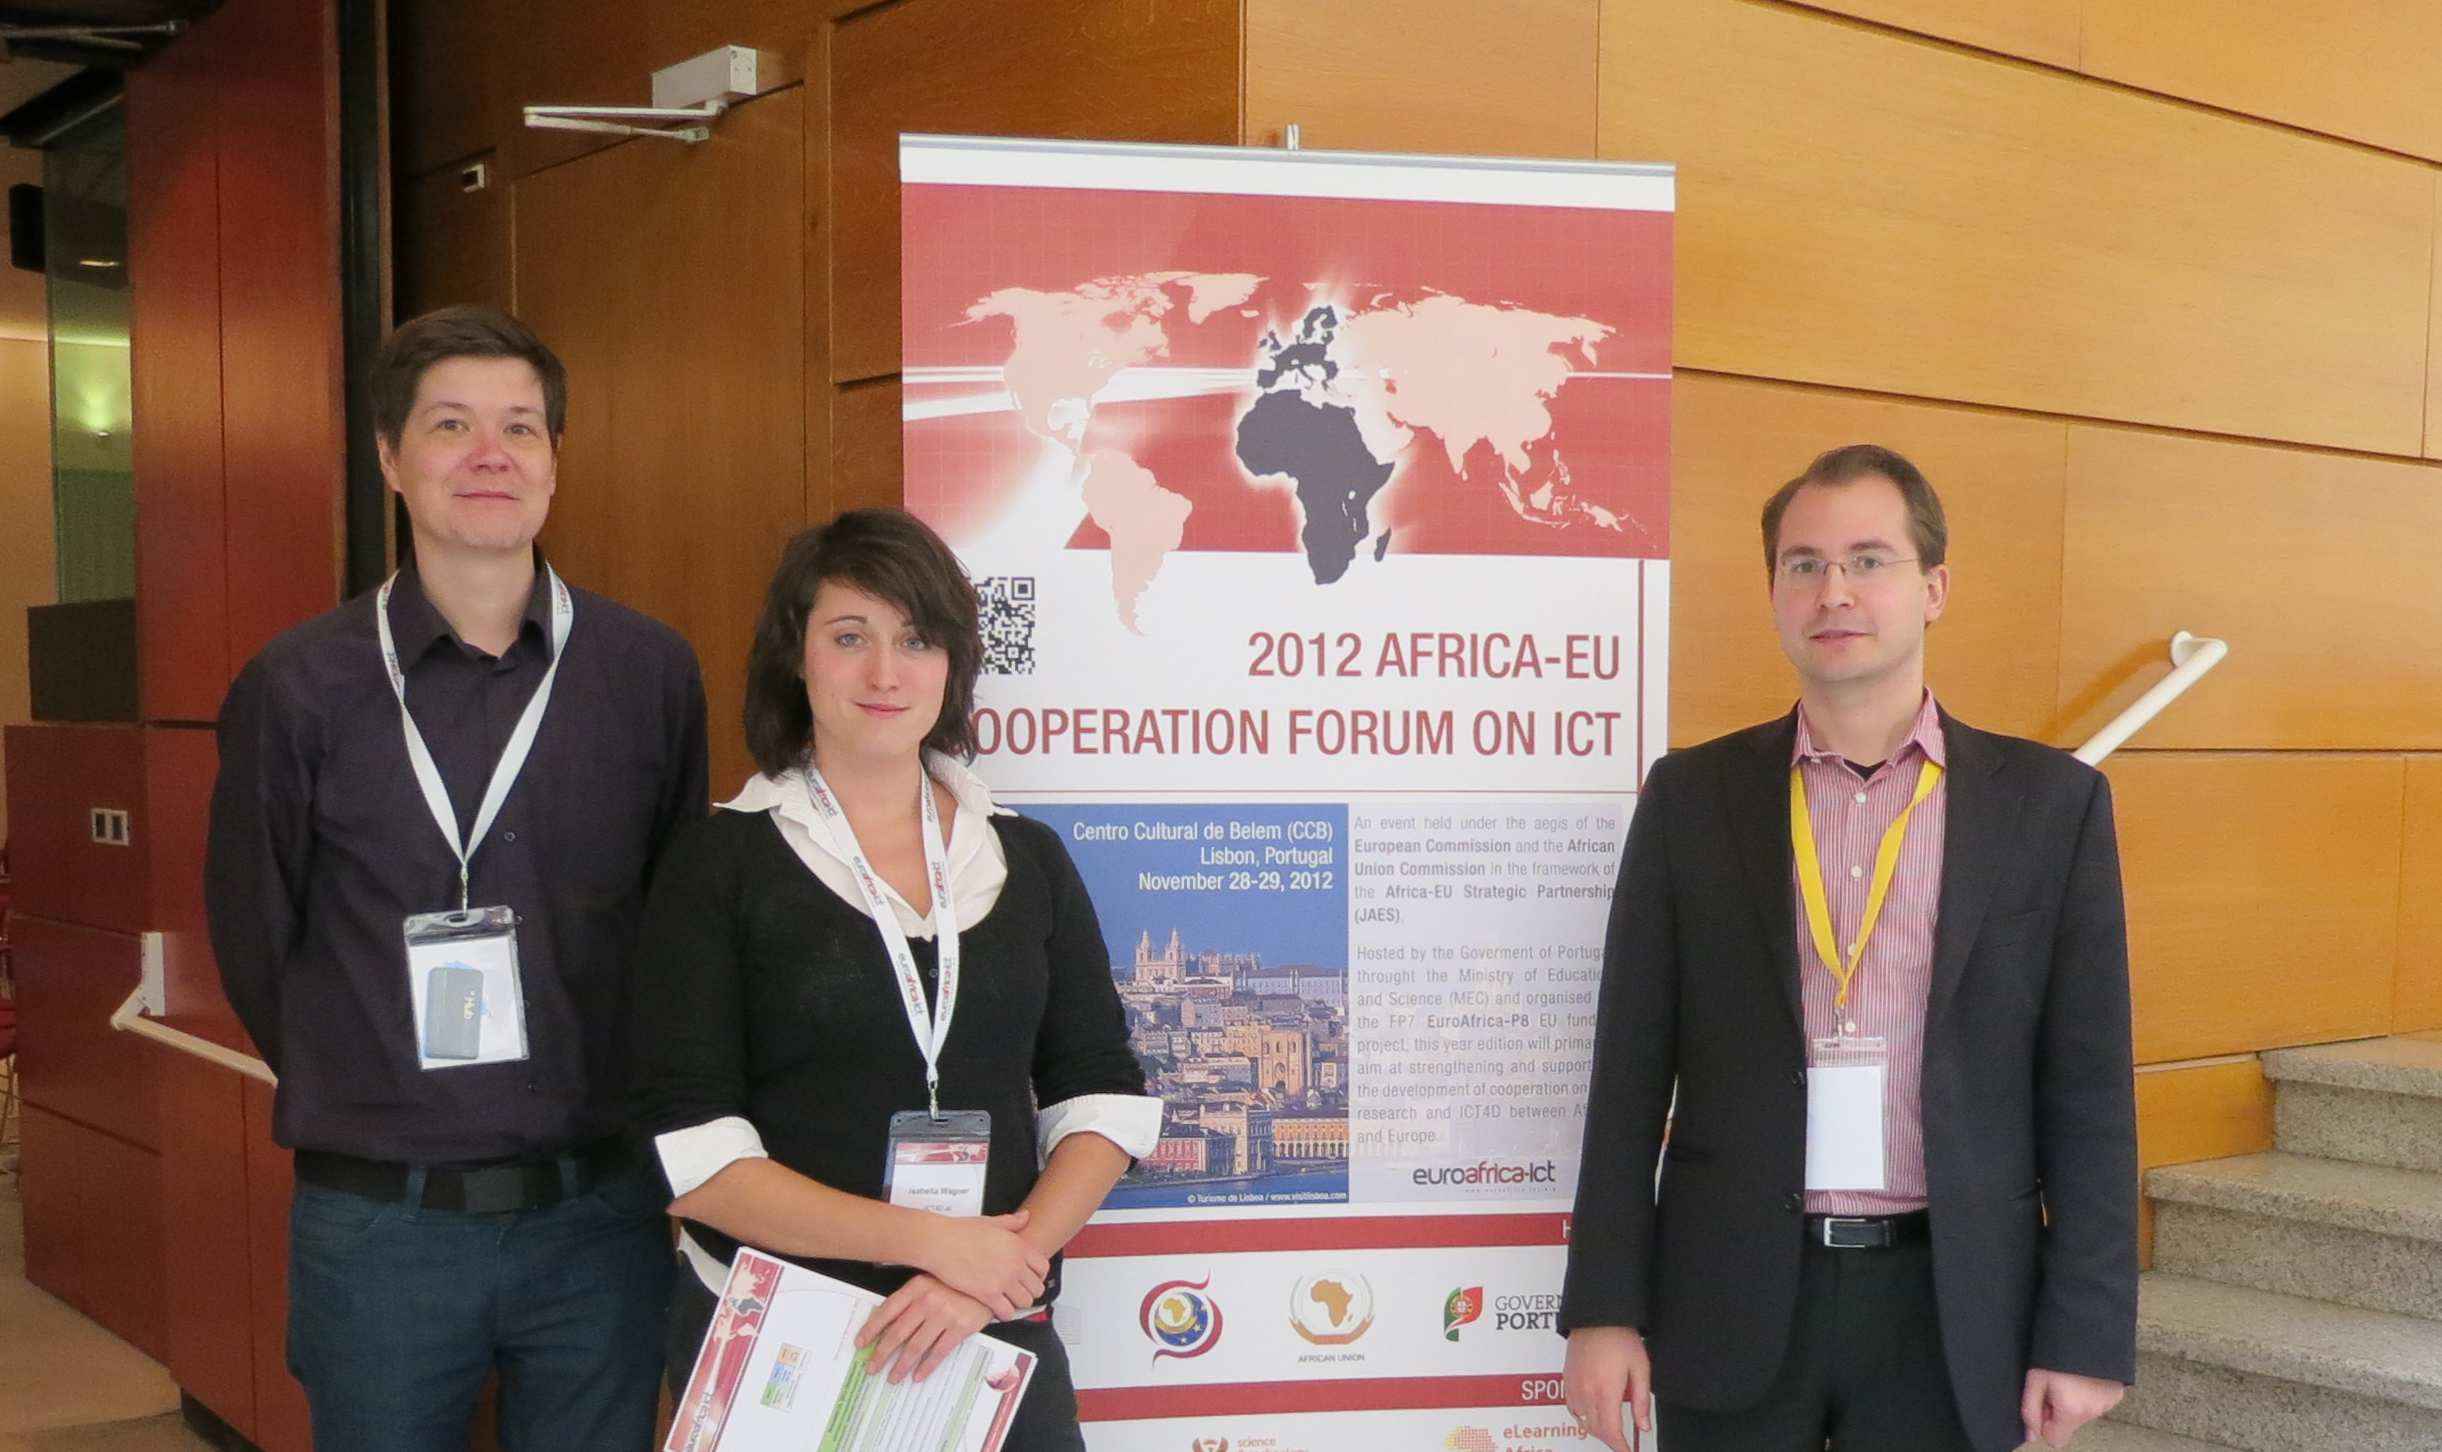 ICT4D.at @ 2012 Africa-EU Cooperation Forum on ICT